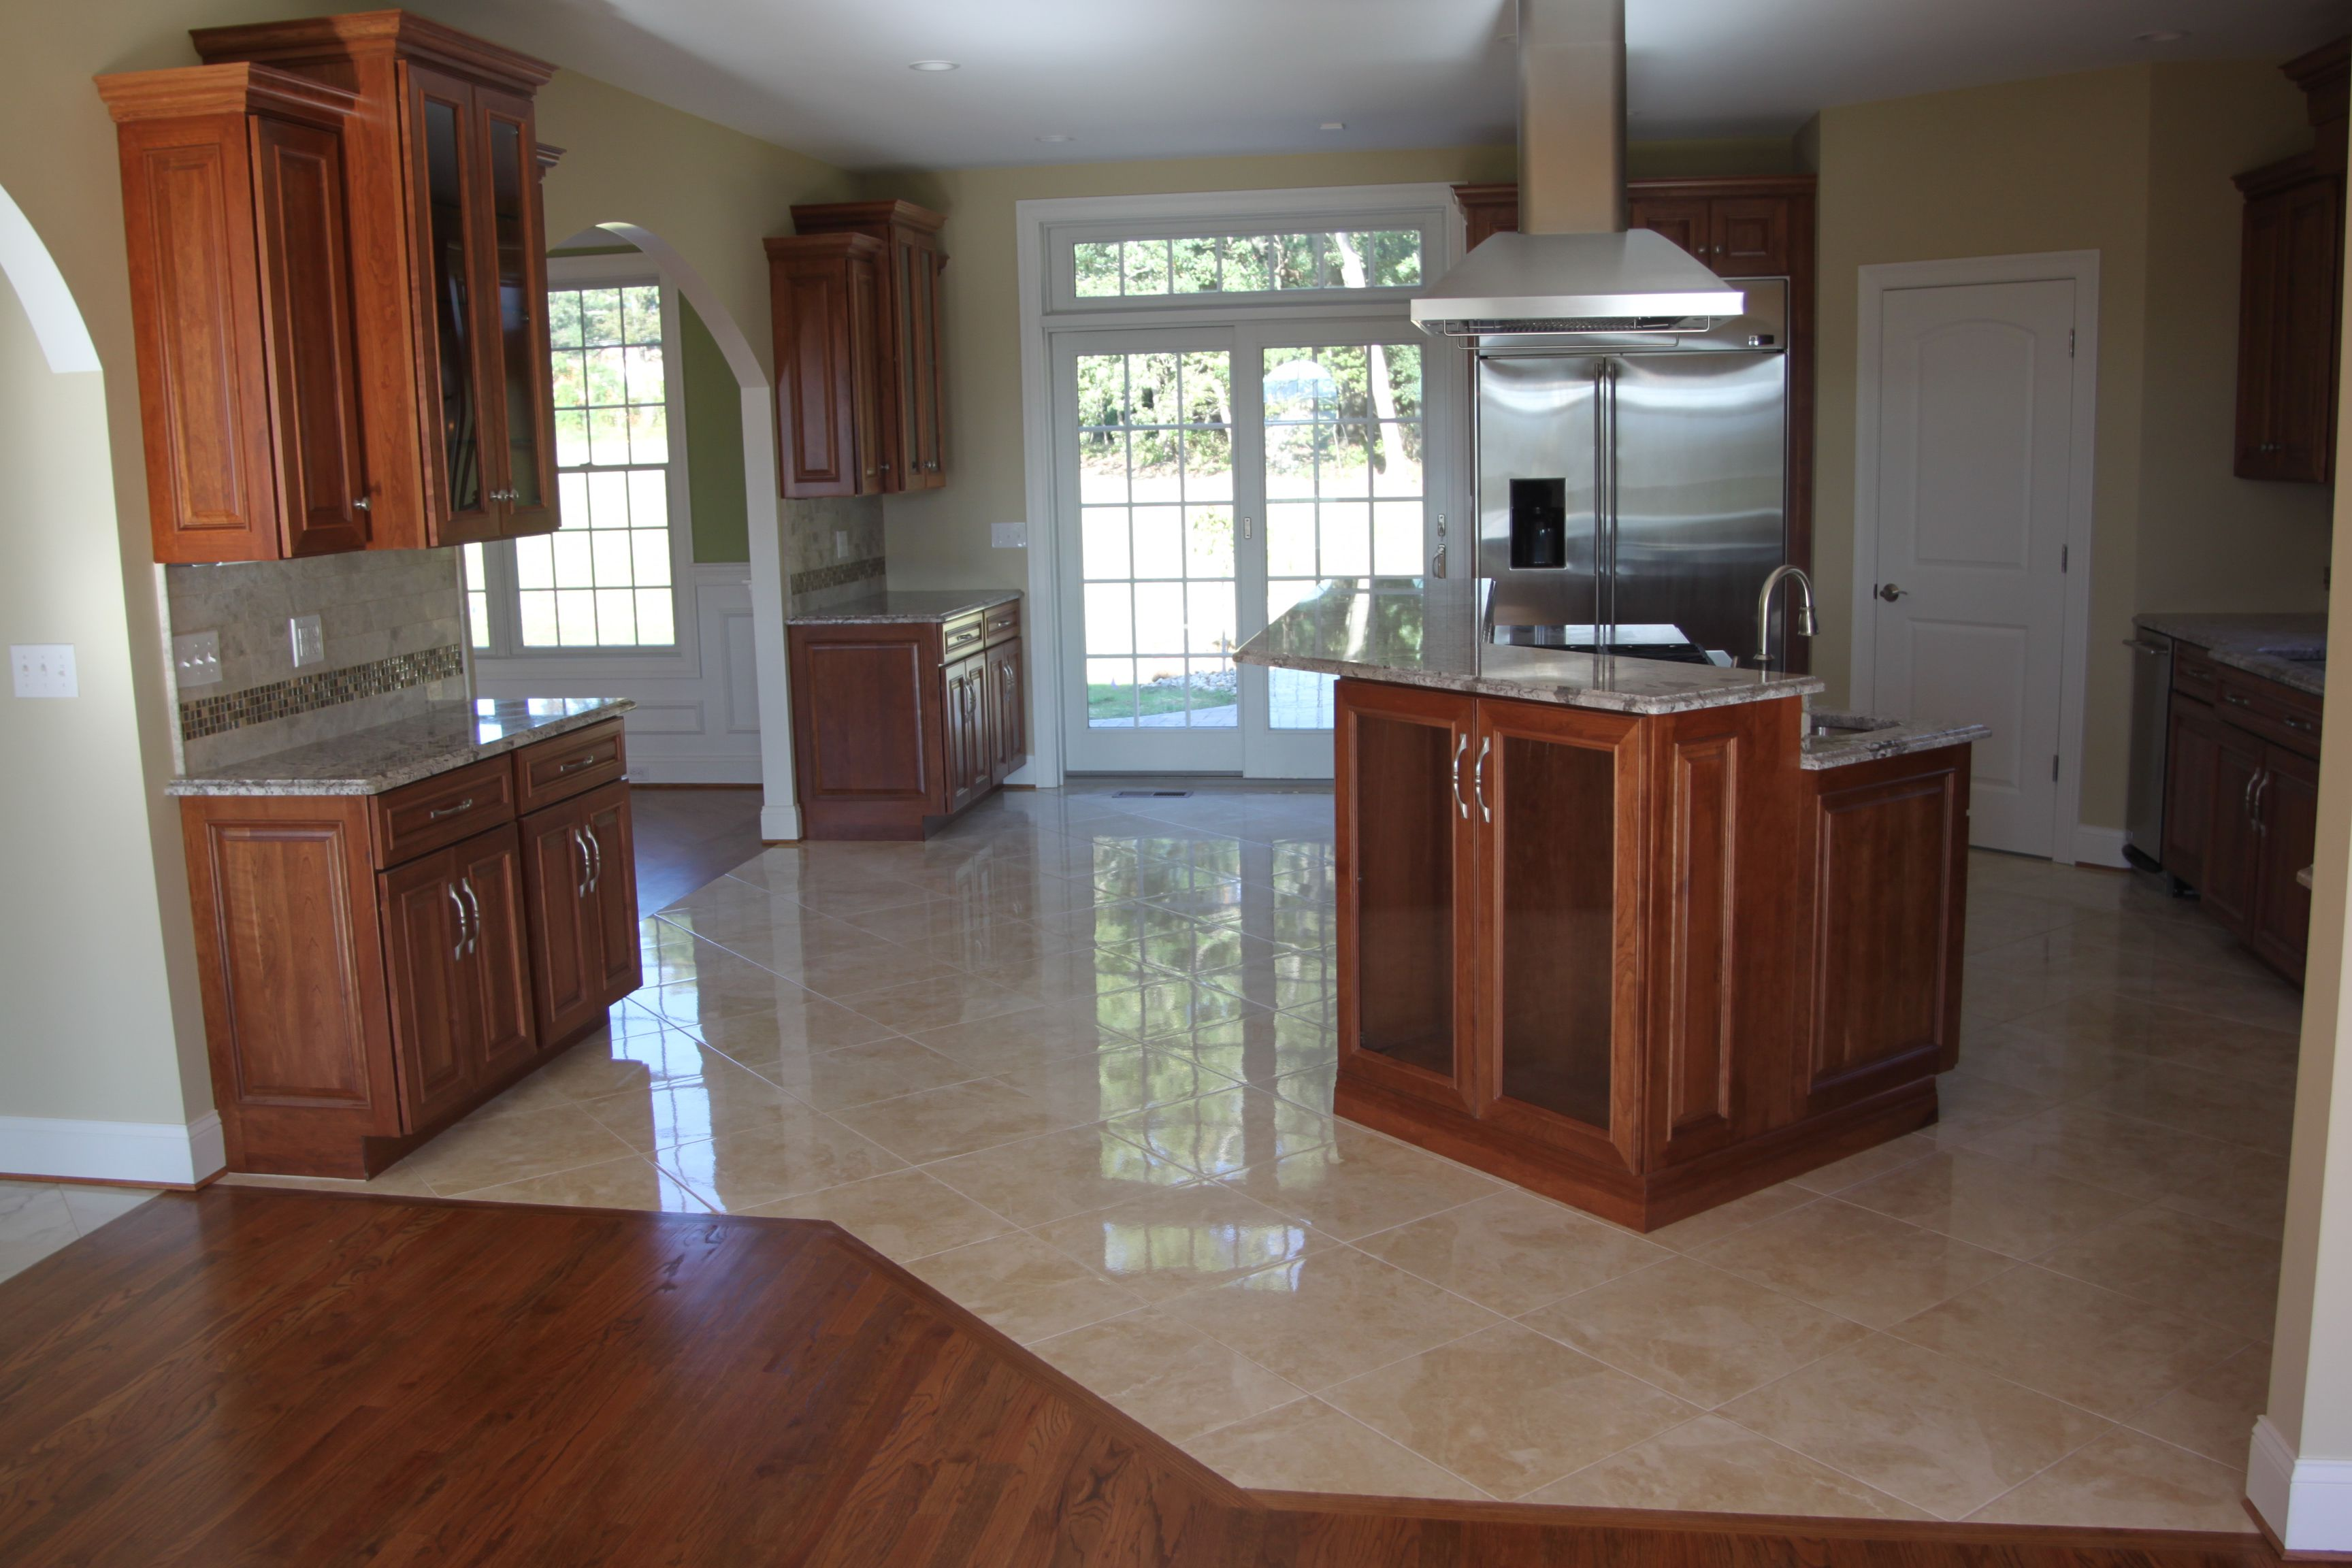 Floor tile designs ideas to enhance your floor appearance for Kitchen and floor tiles